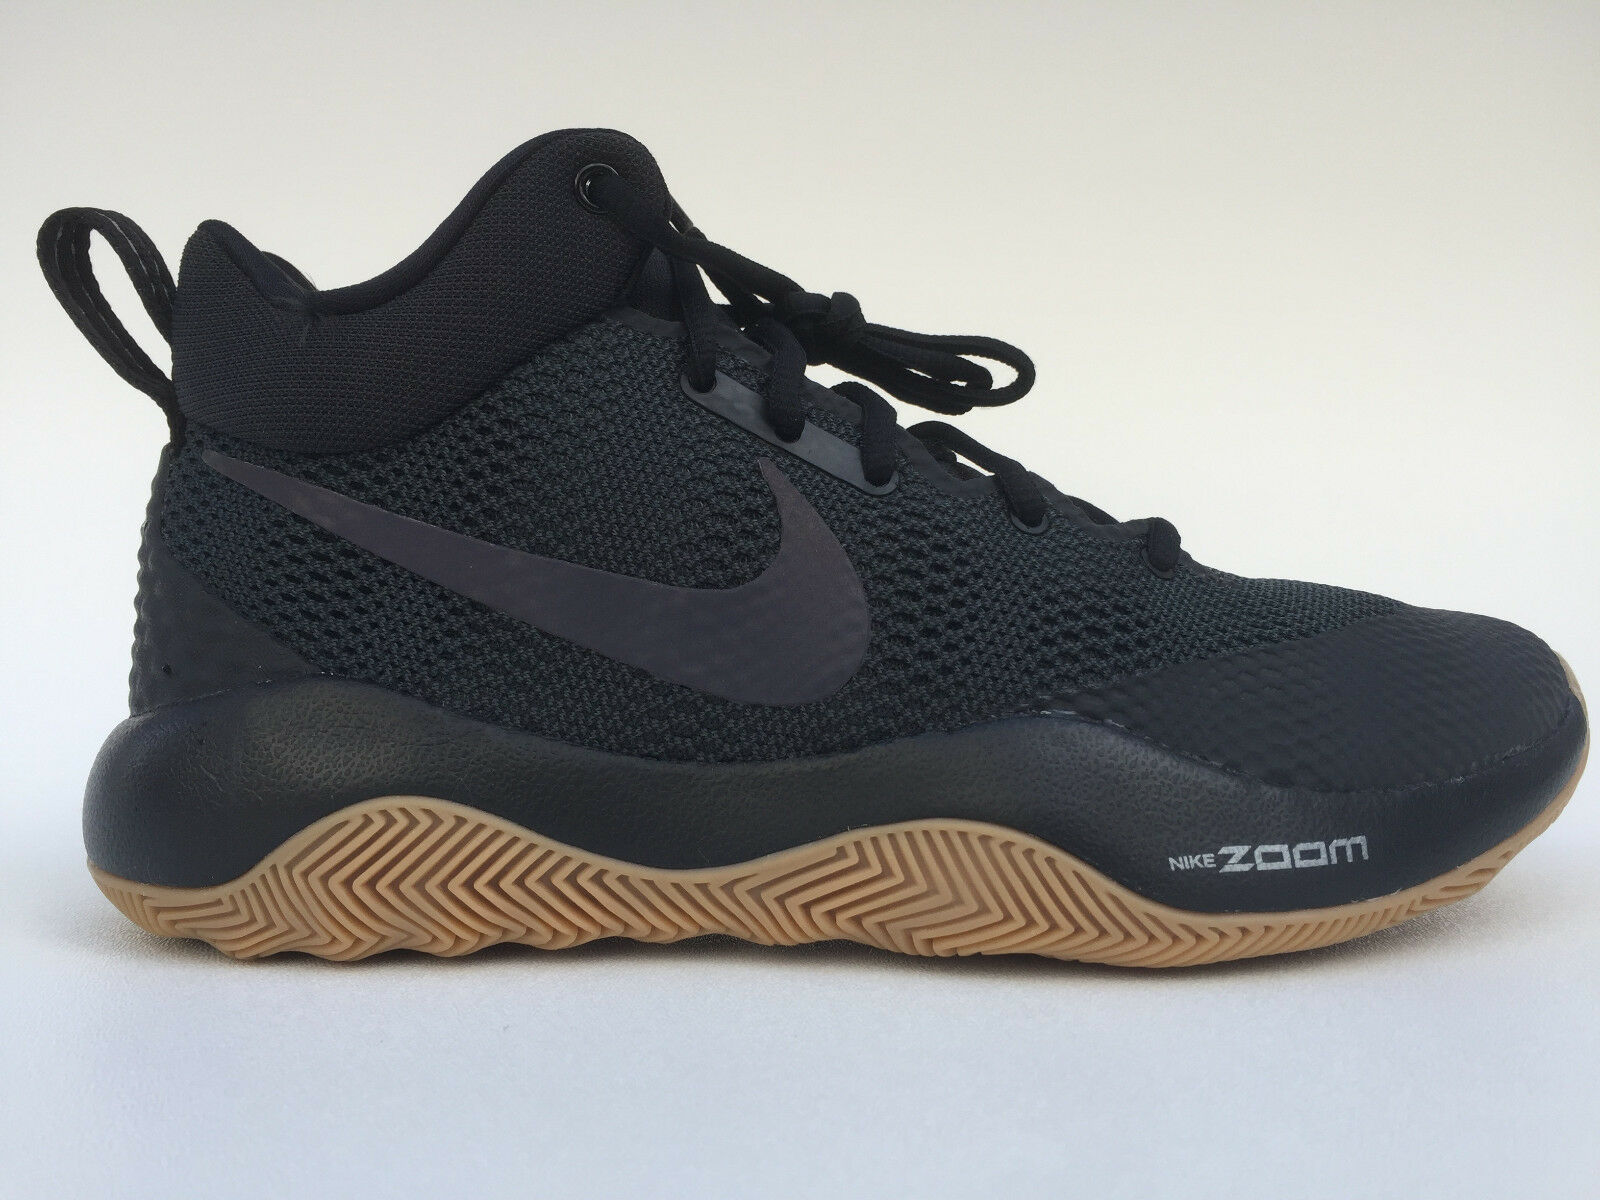 brand new e44be ccfd2 Men s NIKE Zoom Rev BASKETBALL Shoes Shoes Shoes Size 7.5-13 Black   Gum  Brown